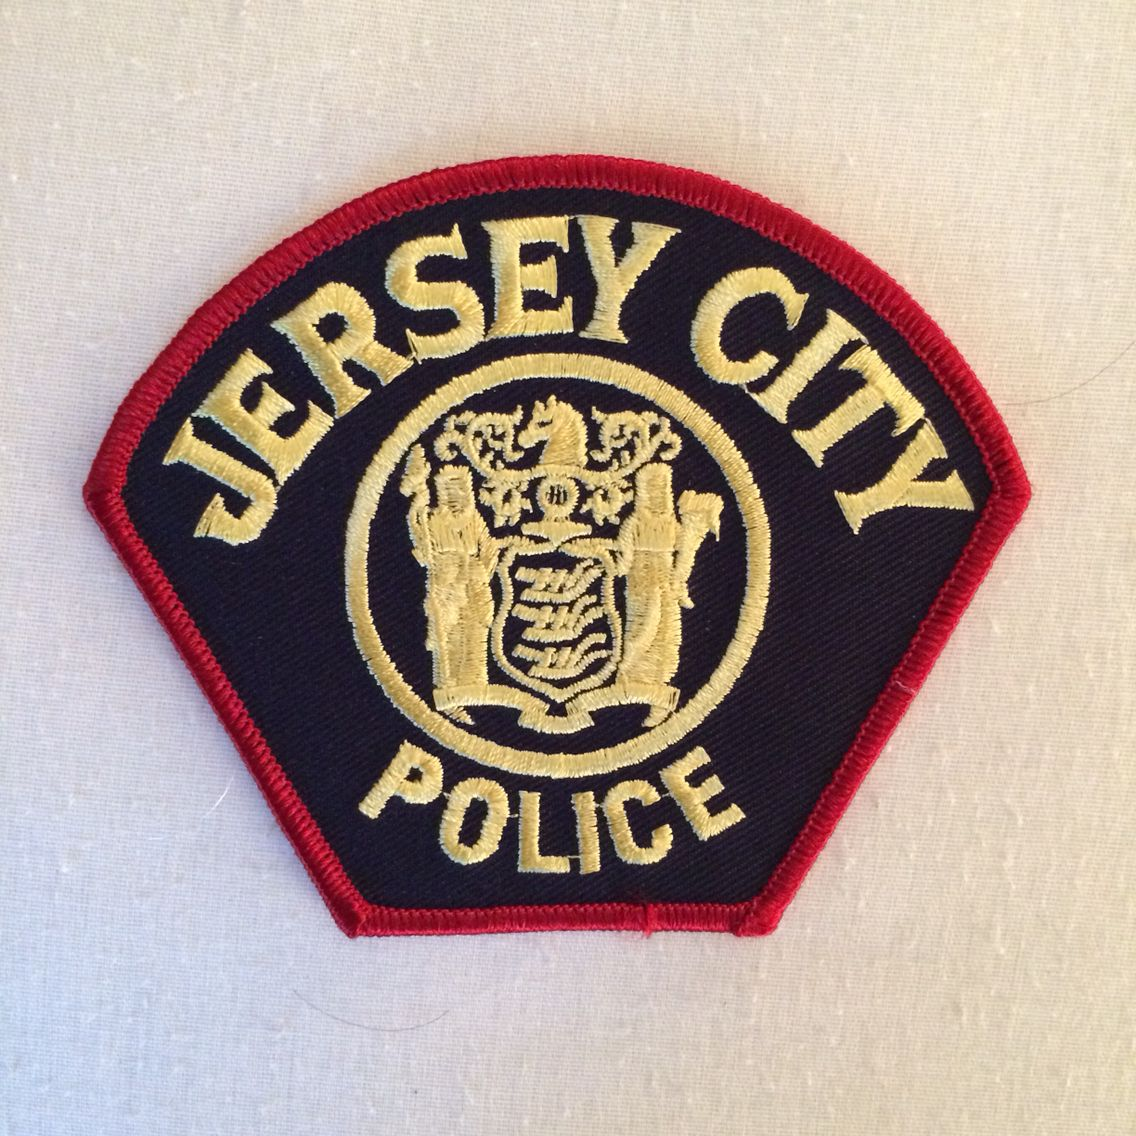 Jersey City Police Police patches, Police, Police badge